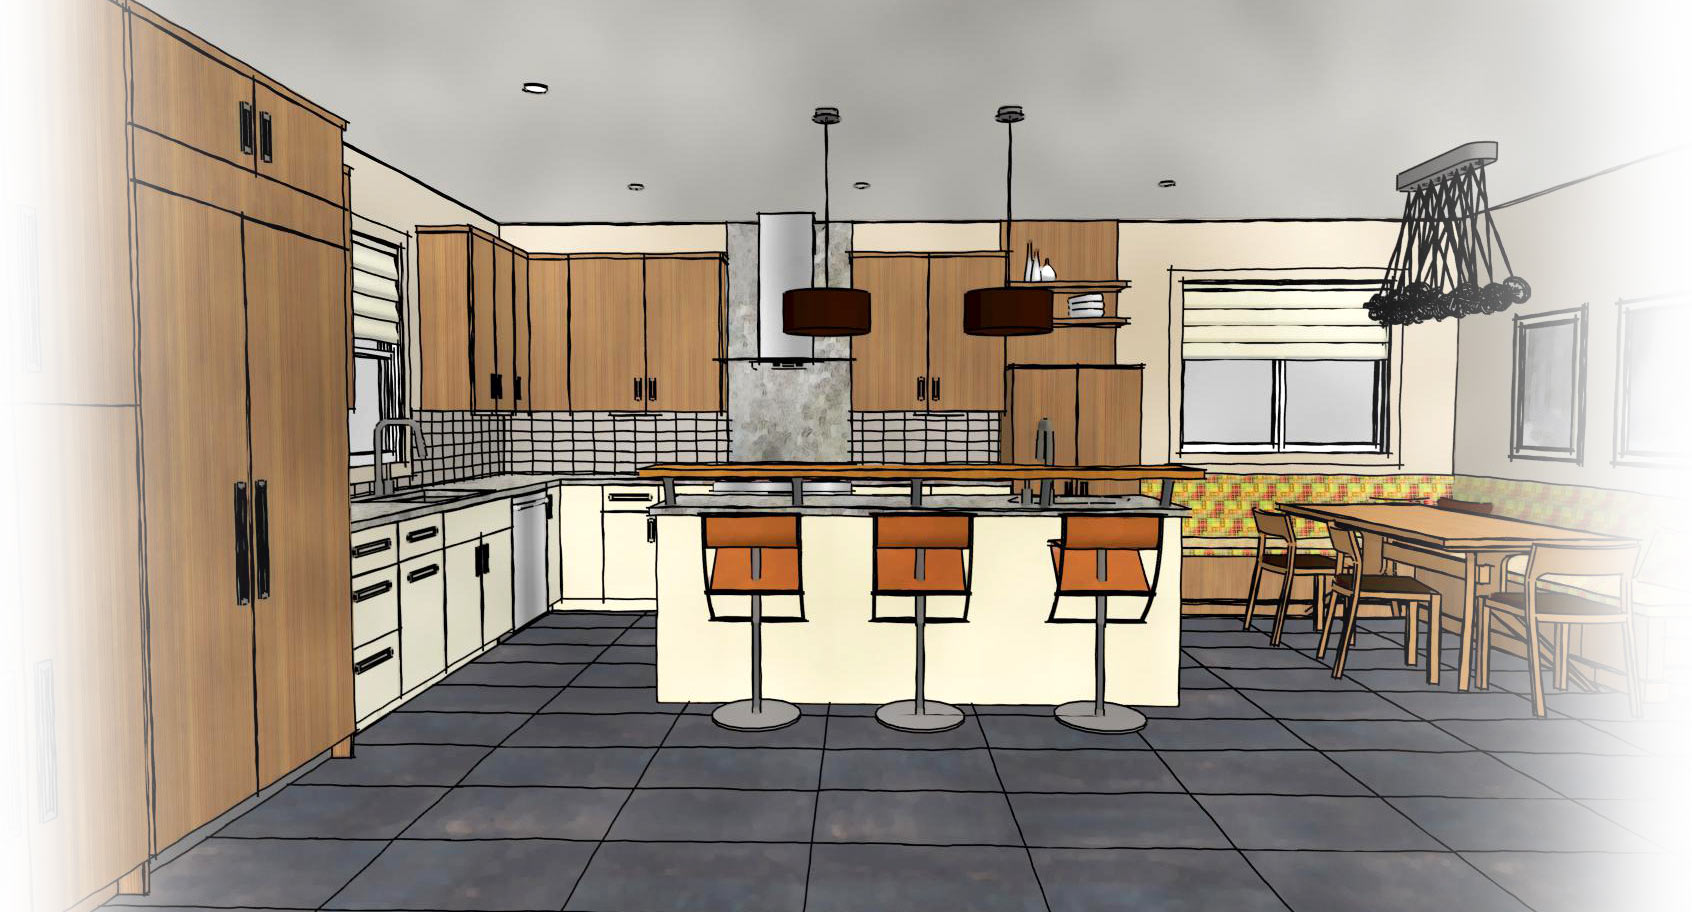 Kitchen Rendered As A Line Drawing